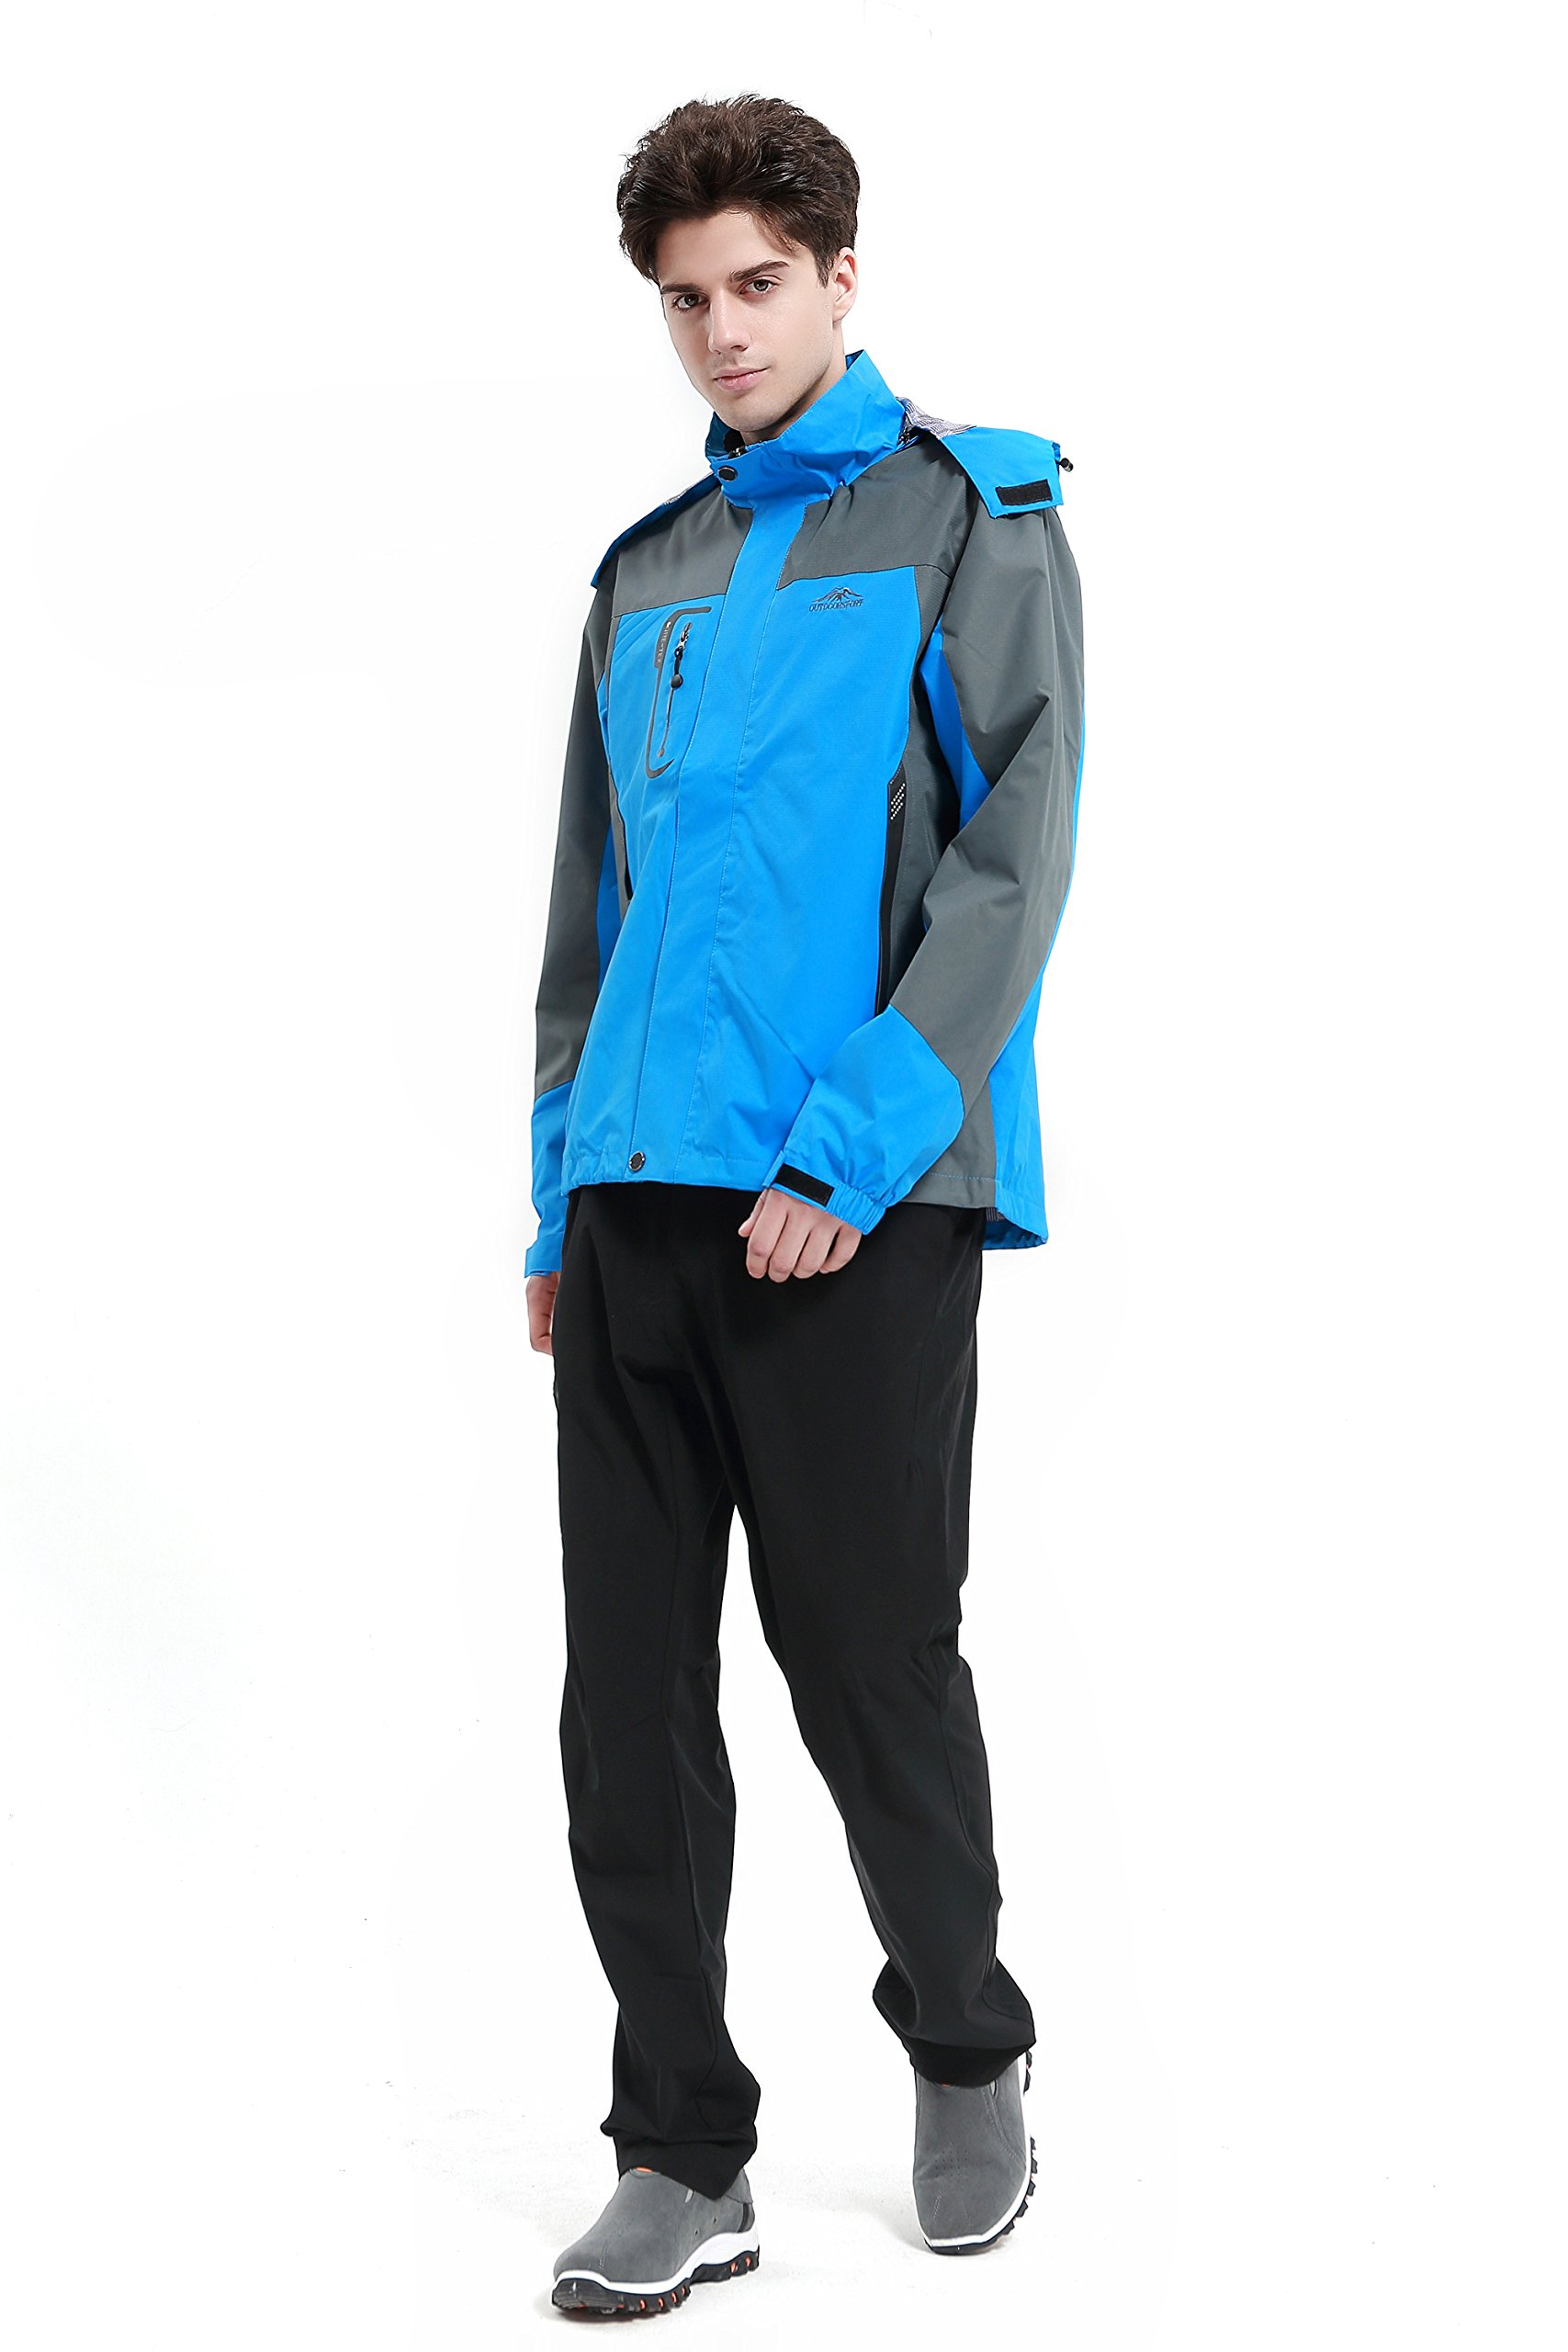 Diamond Candy men Sportswear Hooded Softshell Outdoor Raincoat Waterproof Jacket 02BL